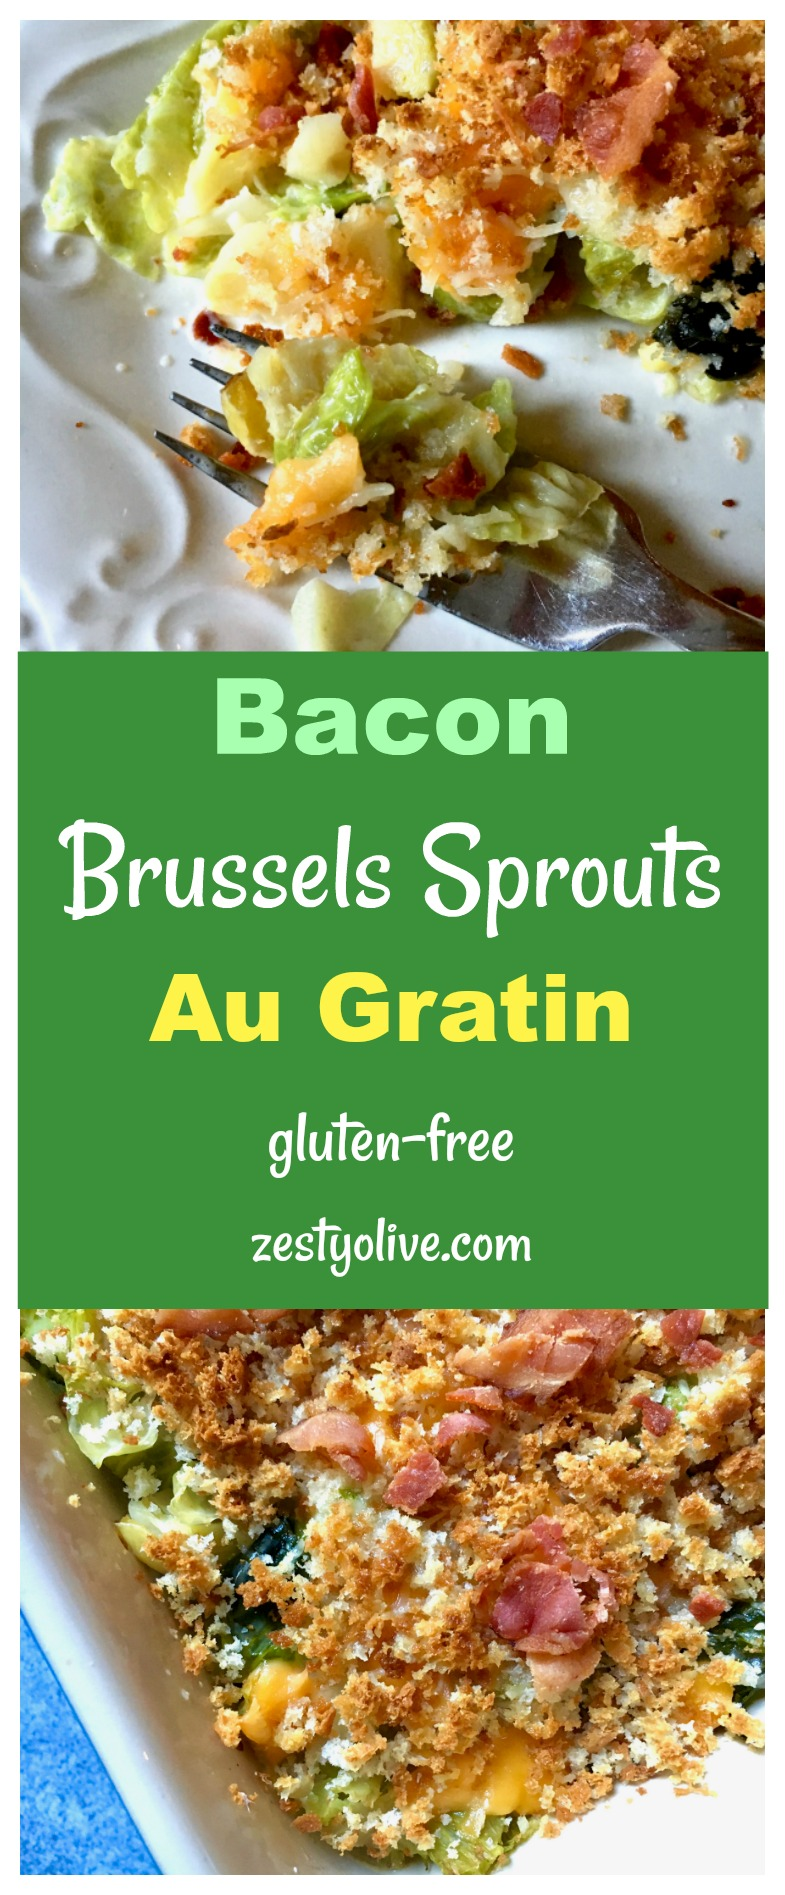 Bacon Brussels Sprouts Au Gratin makes a perfect holiday side dish for Thanksgiving and Christmas. This zesty recipe combines Brussels sprouts with two cheeses, bacon, garlic, yummy cream and a topping of breadcrumbs, which can be gluten-free if you need it to be!